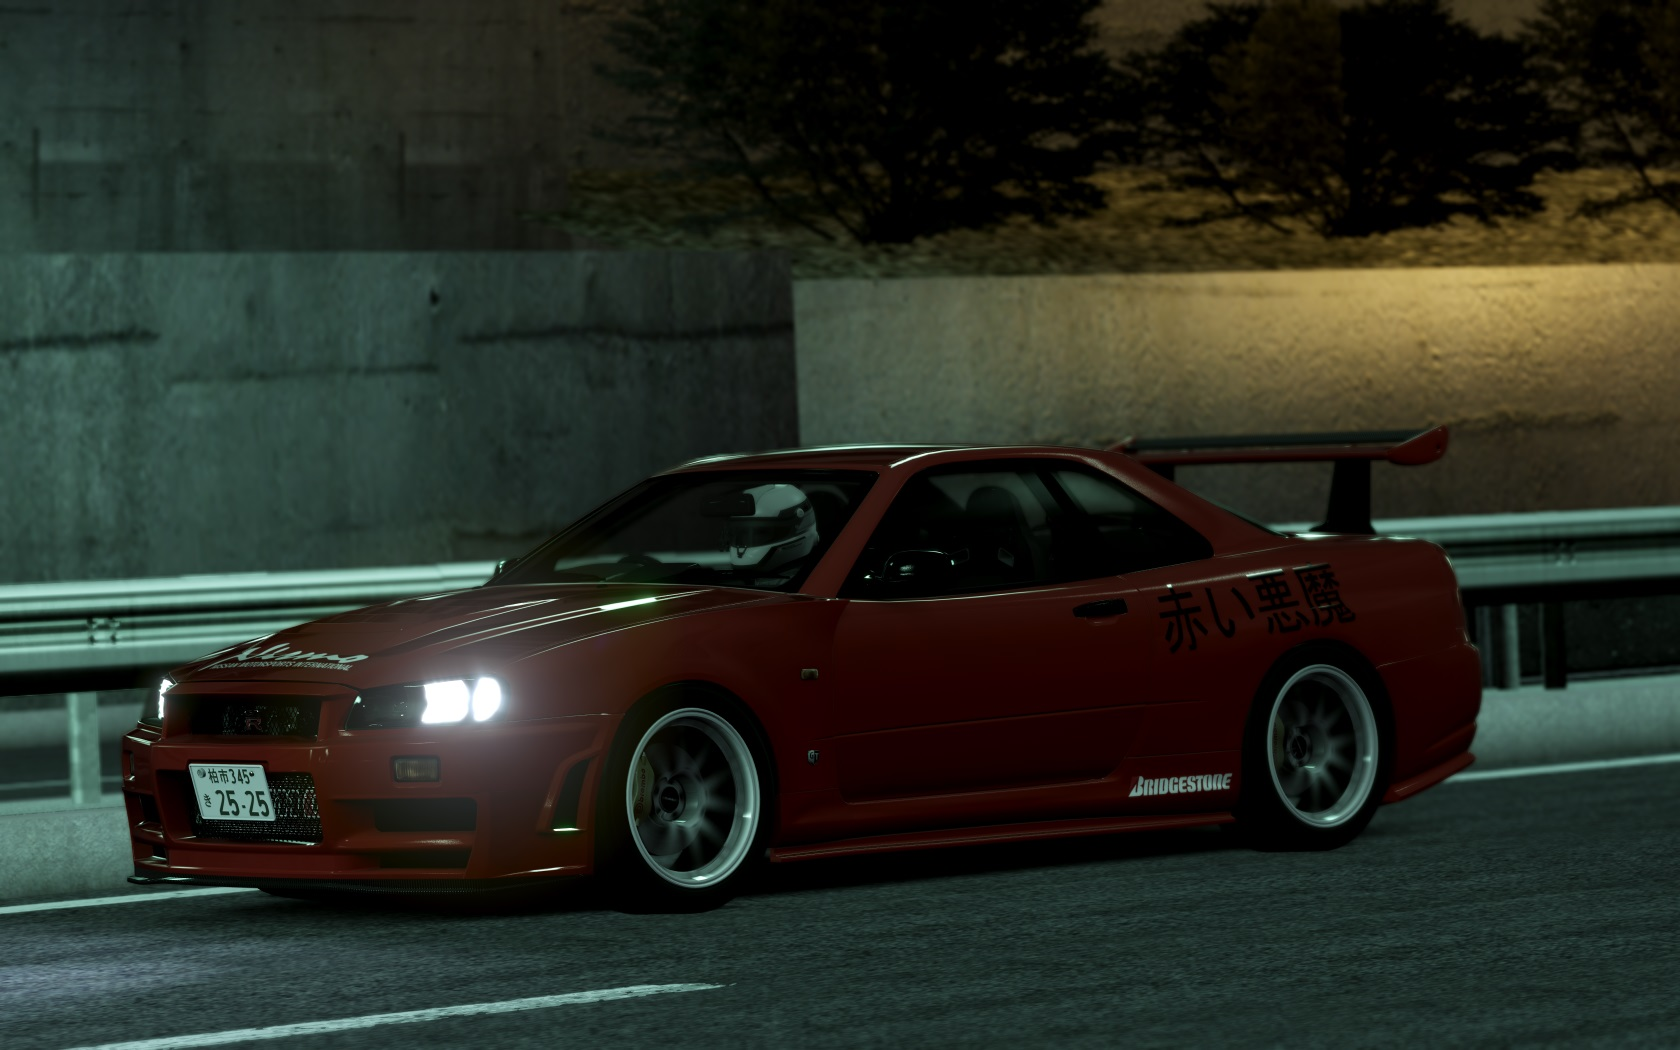 Screenshot_kgk_nissan_skyline_r34_maxy_c1-midnight_v13_24-11-118-16-10-32.jpg